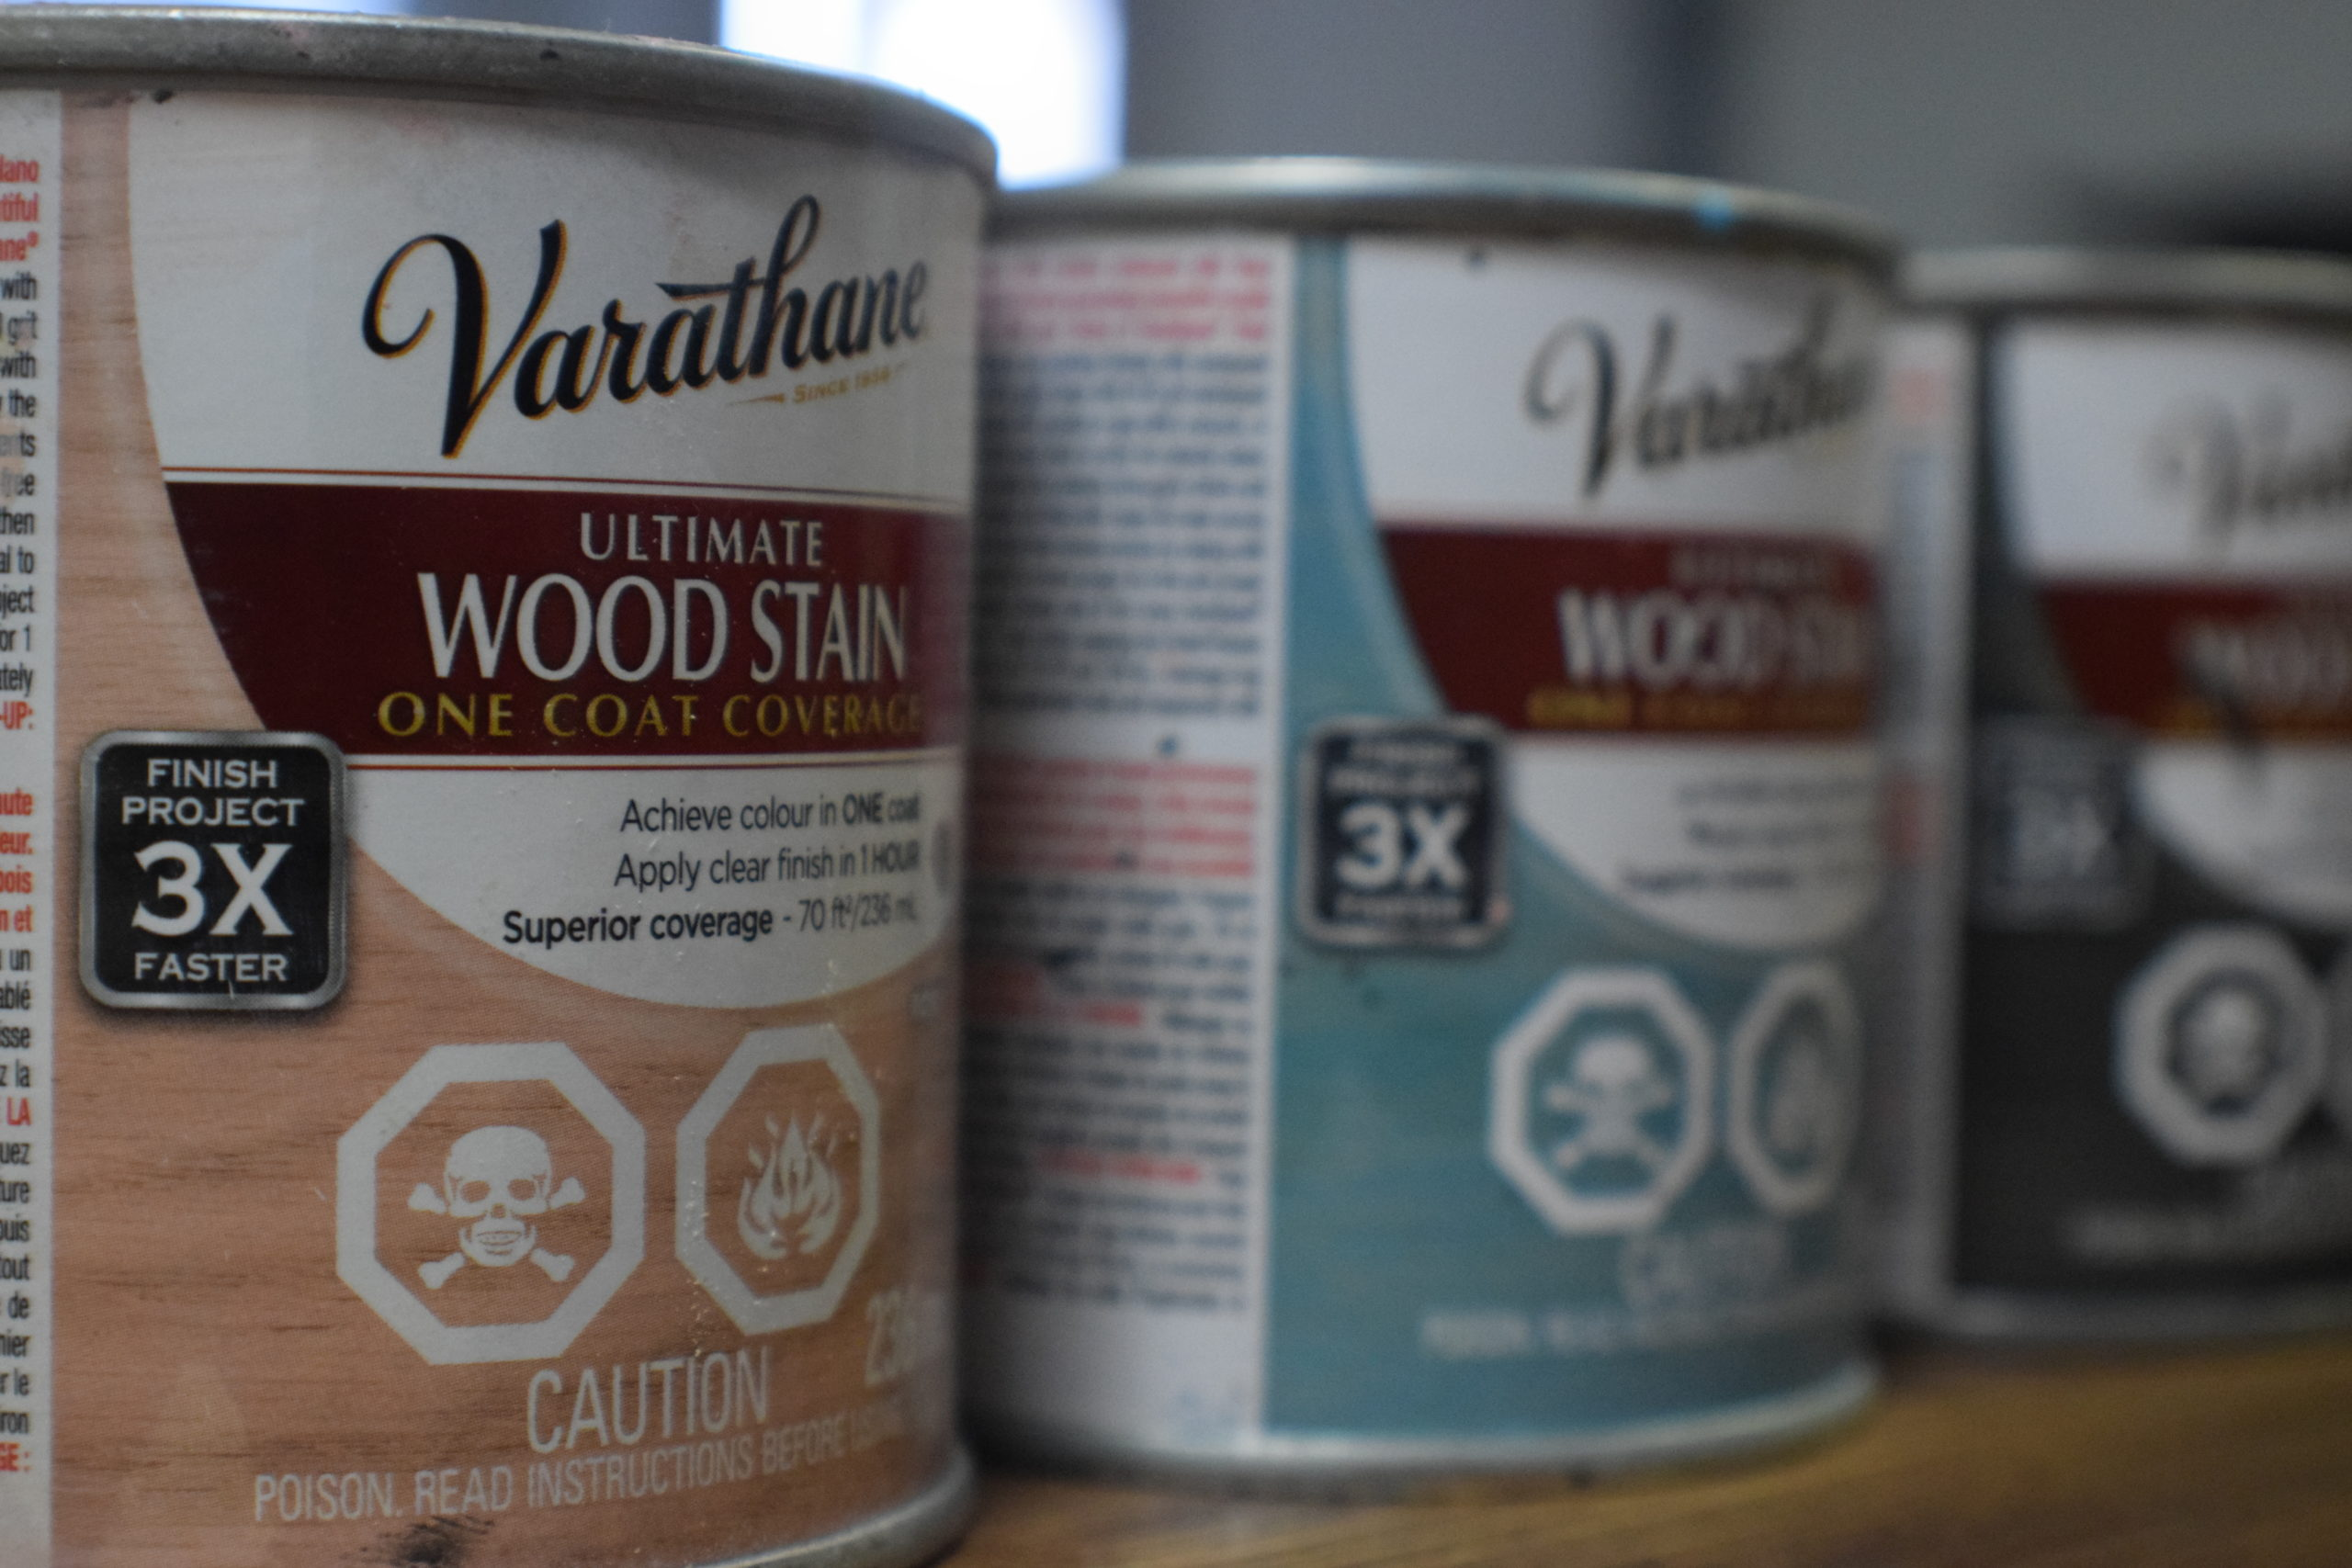 Varathane wood stain cans in pink, aqua and charcoal lined up on a table